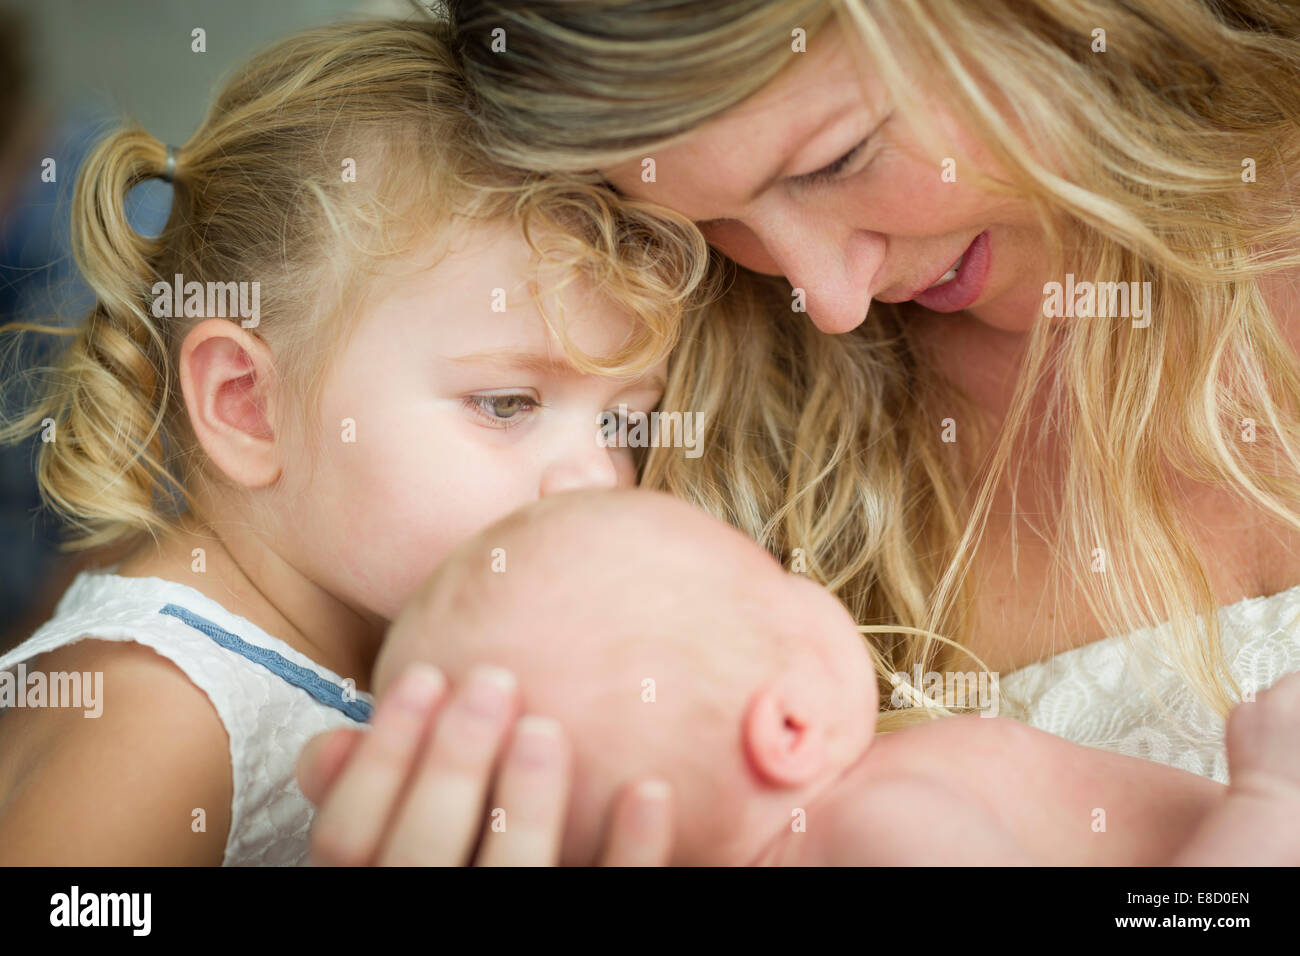 Beautiful Young Mother Holds Newborn Baby Girl as Young Sister Looks On. - Stock Image